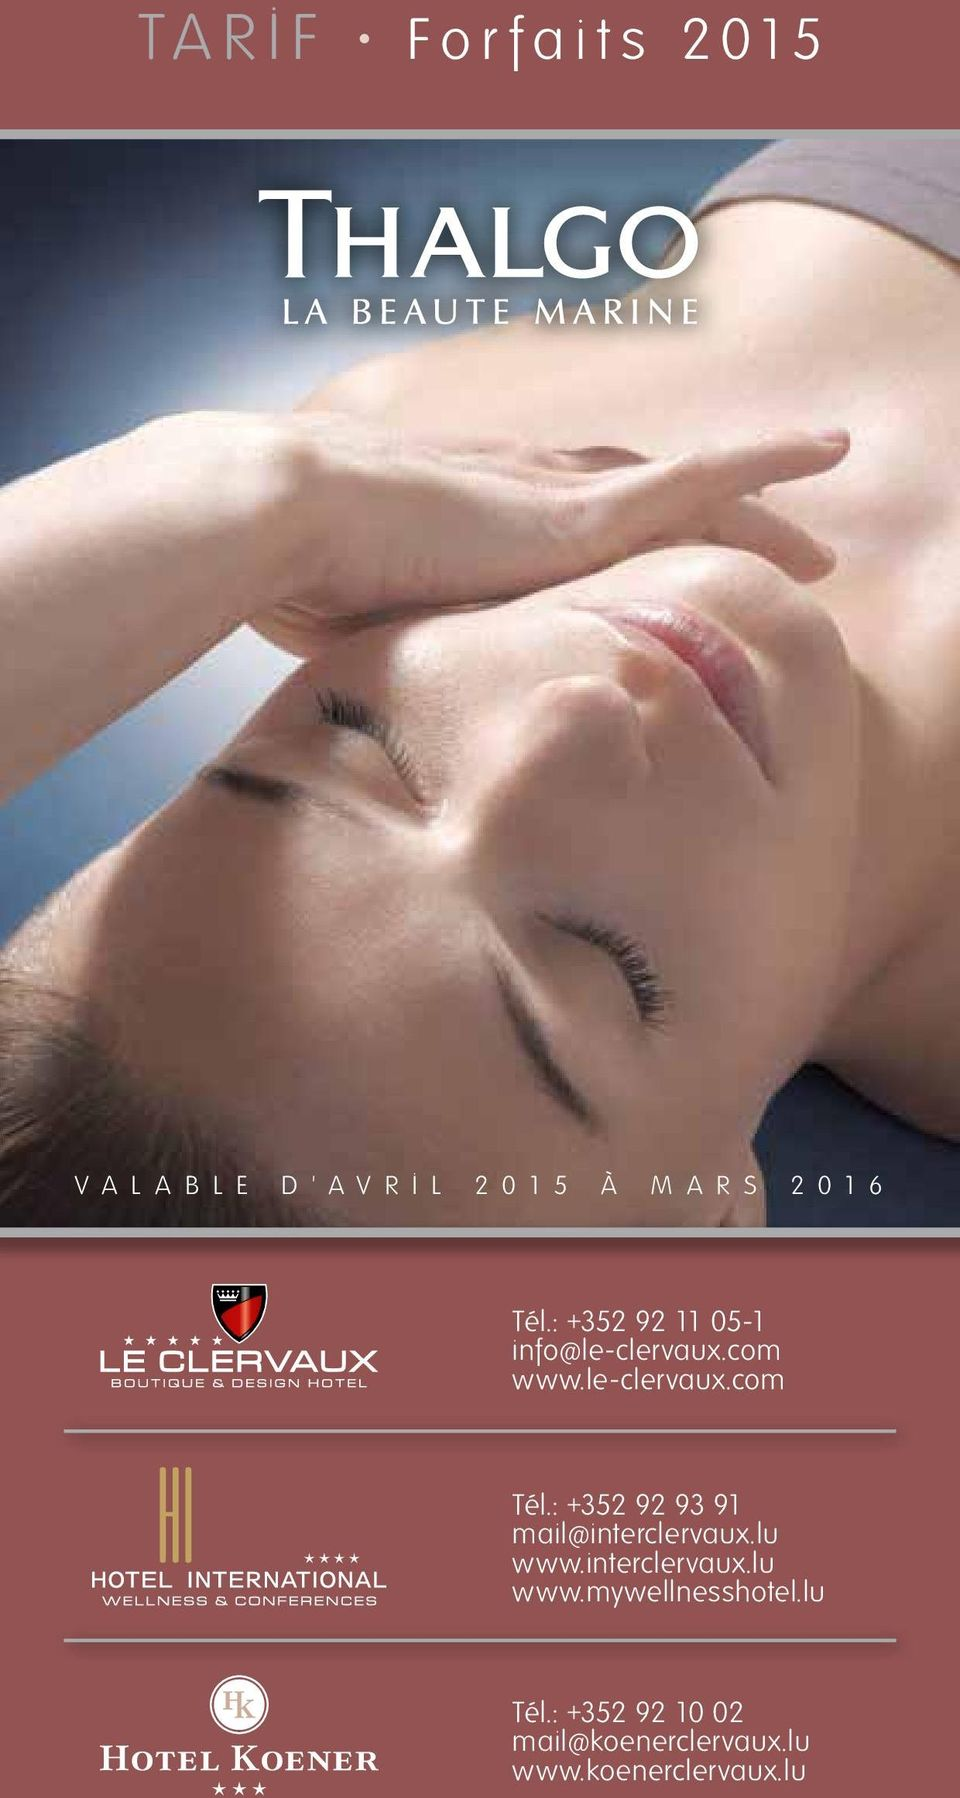 : +352 92 93 91 mail@interclervaux.lu www.interclervaux.lu www.mywellnesshotel.